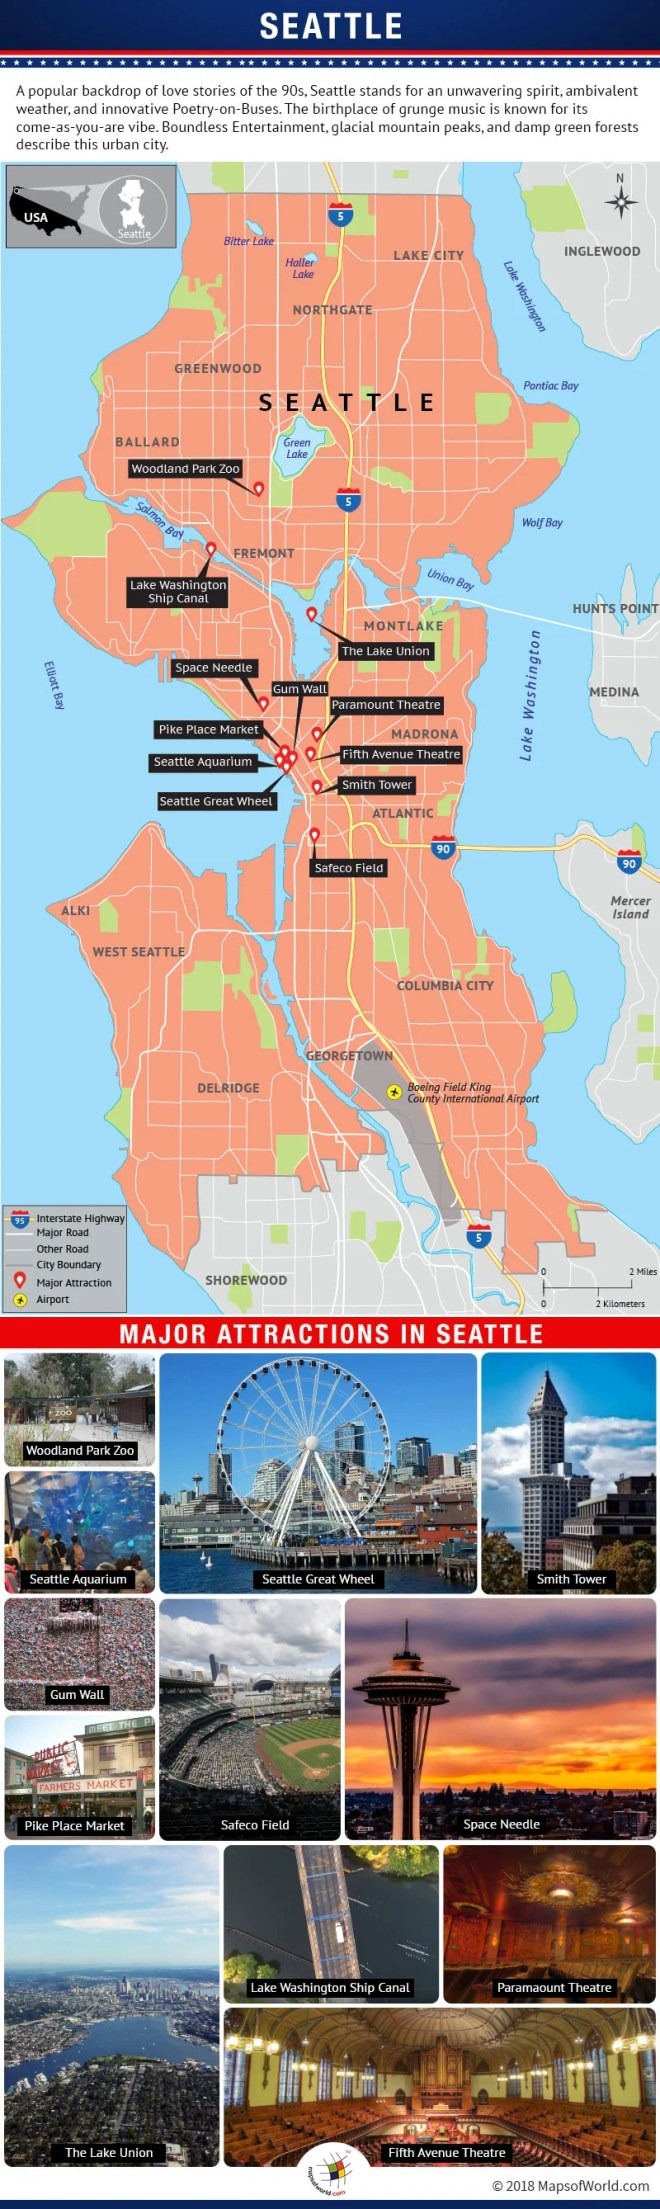 Infographic Depicting Seattle's Tourist Attractions